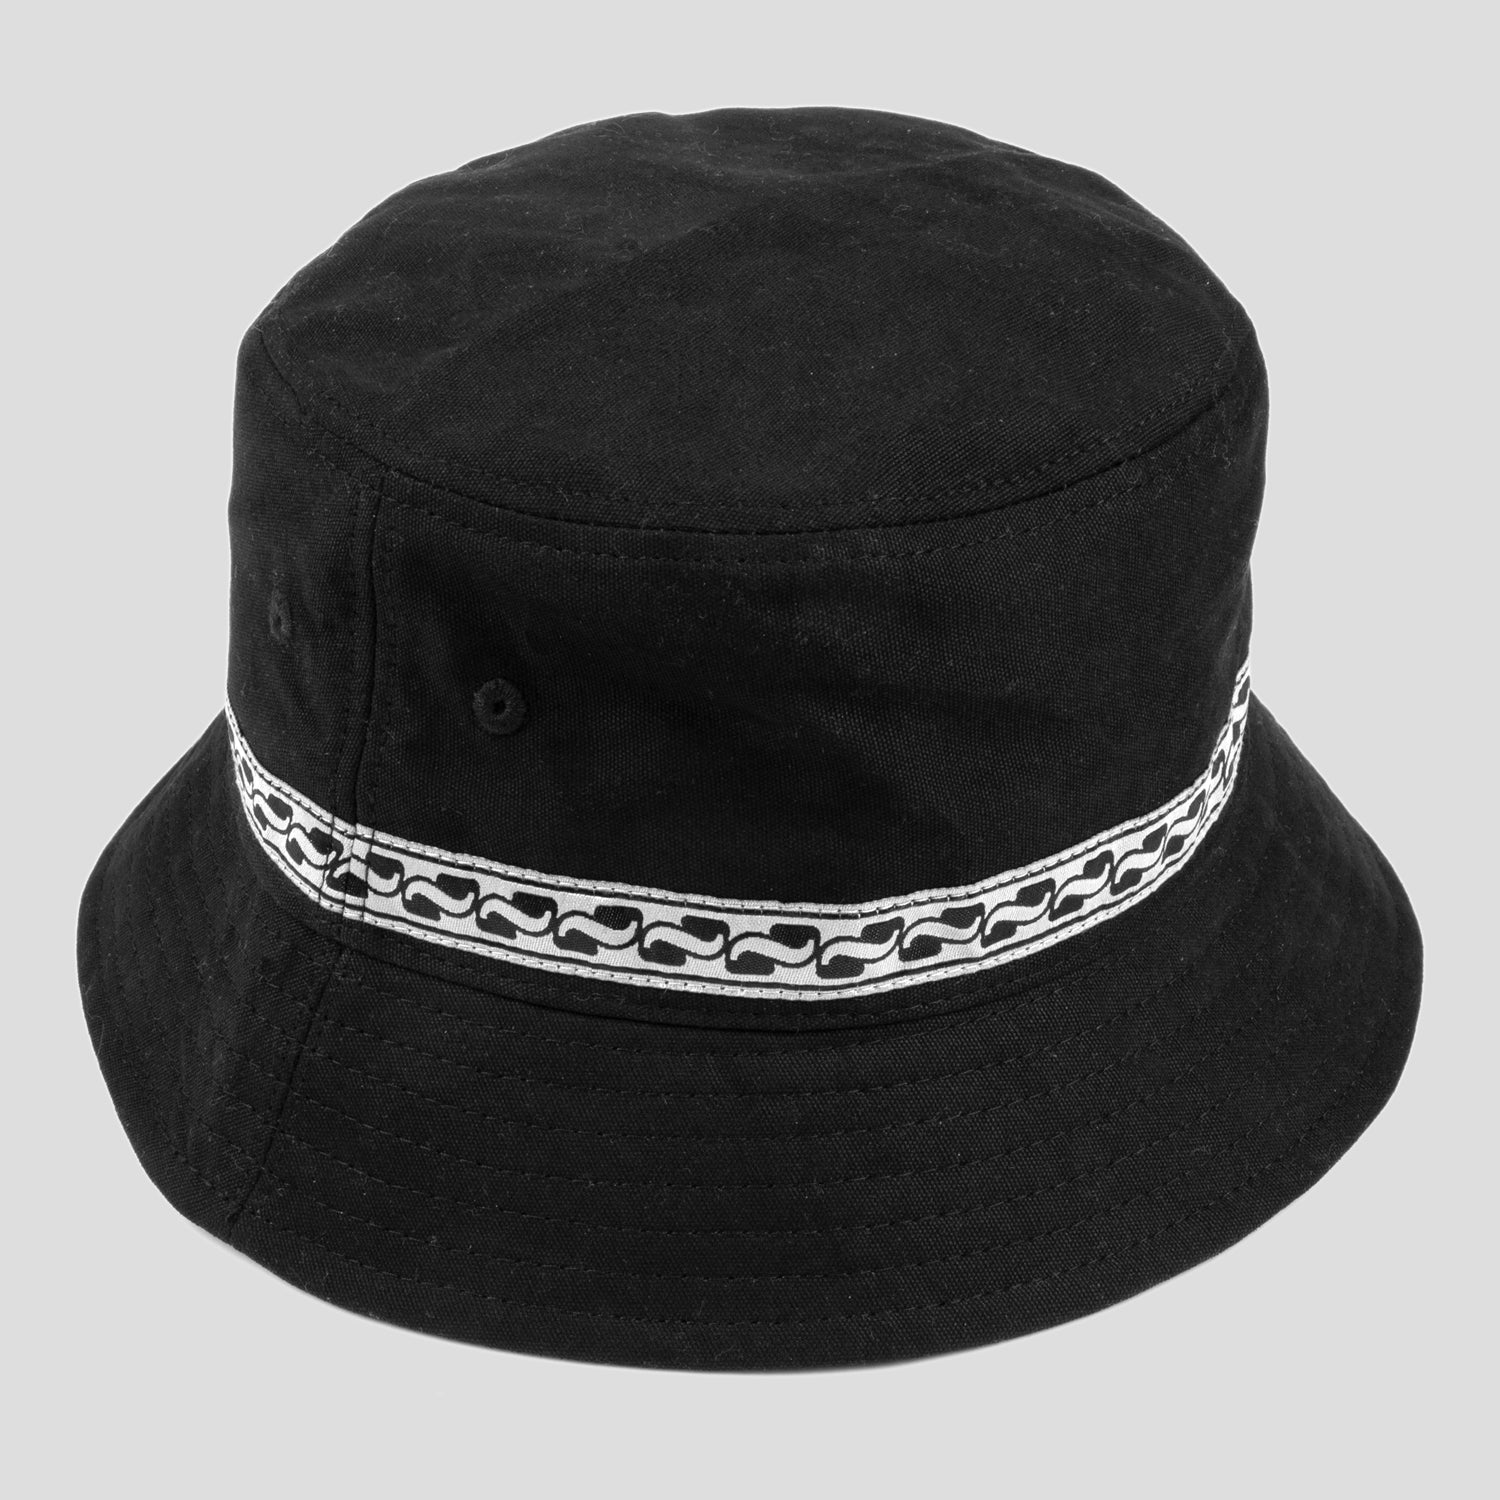 Auto Ribbon Bucket Hat (Black)